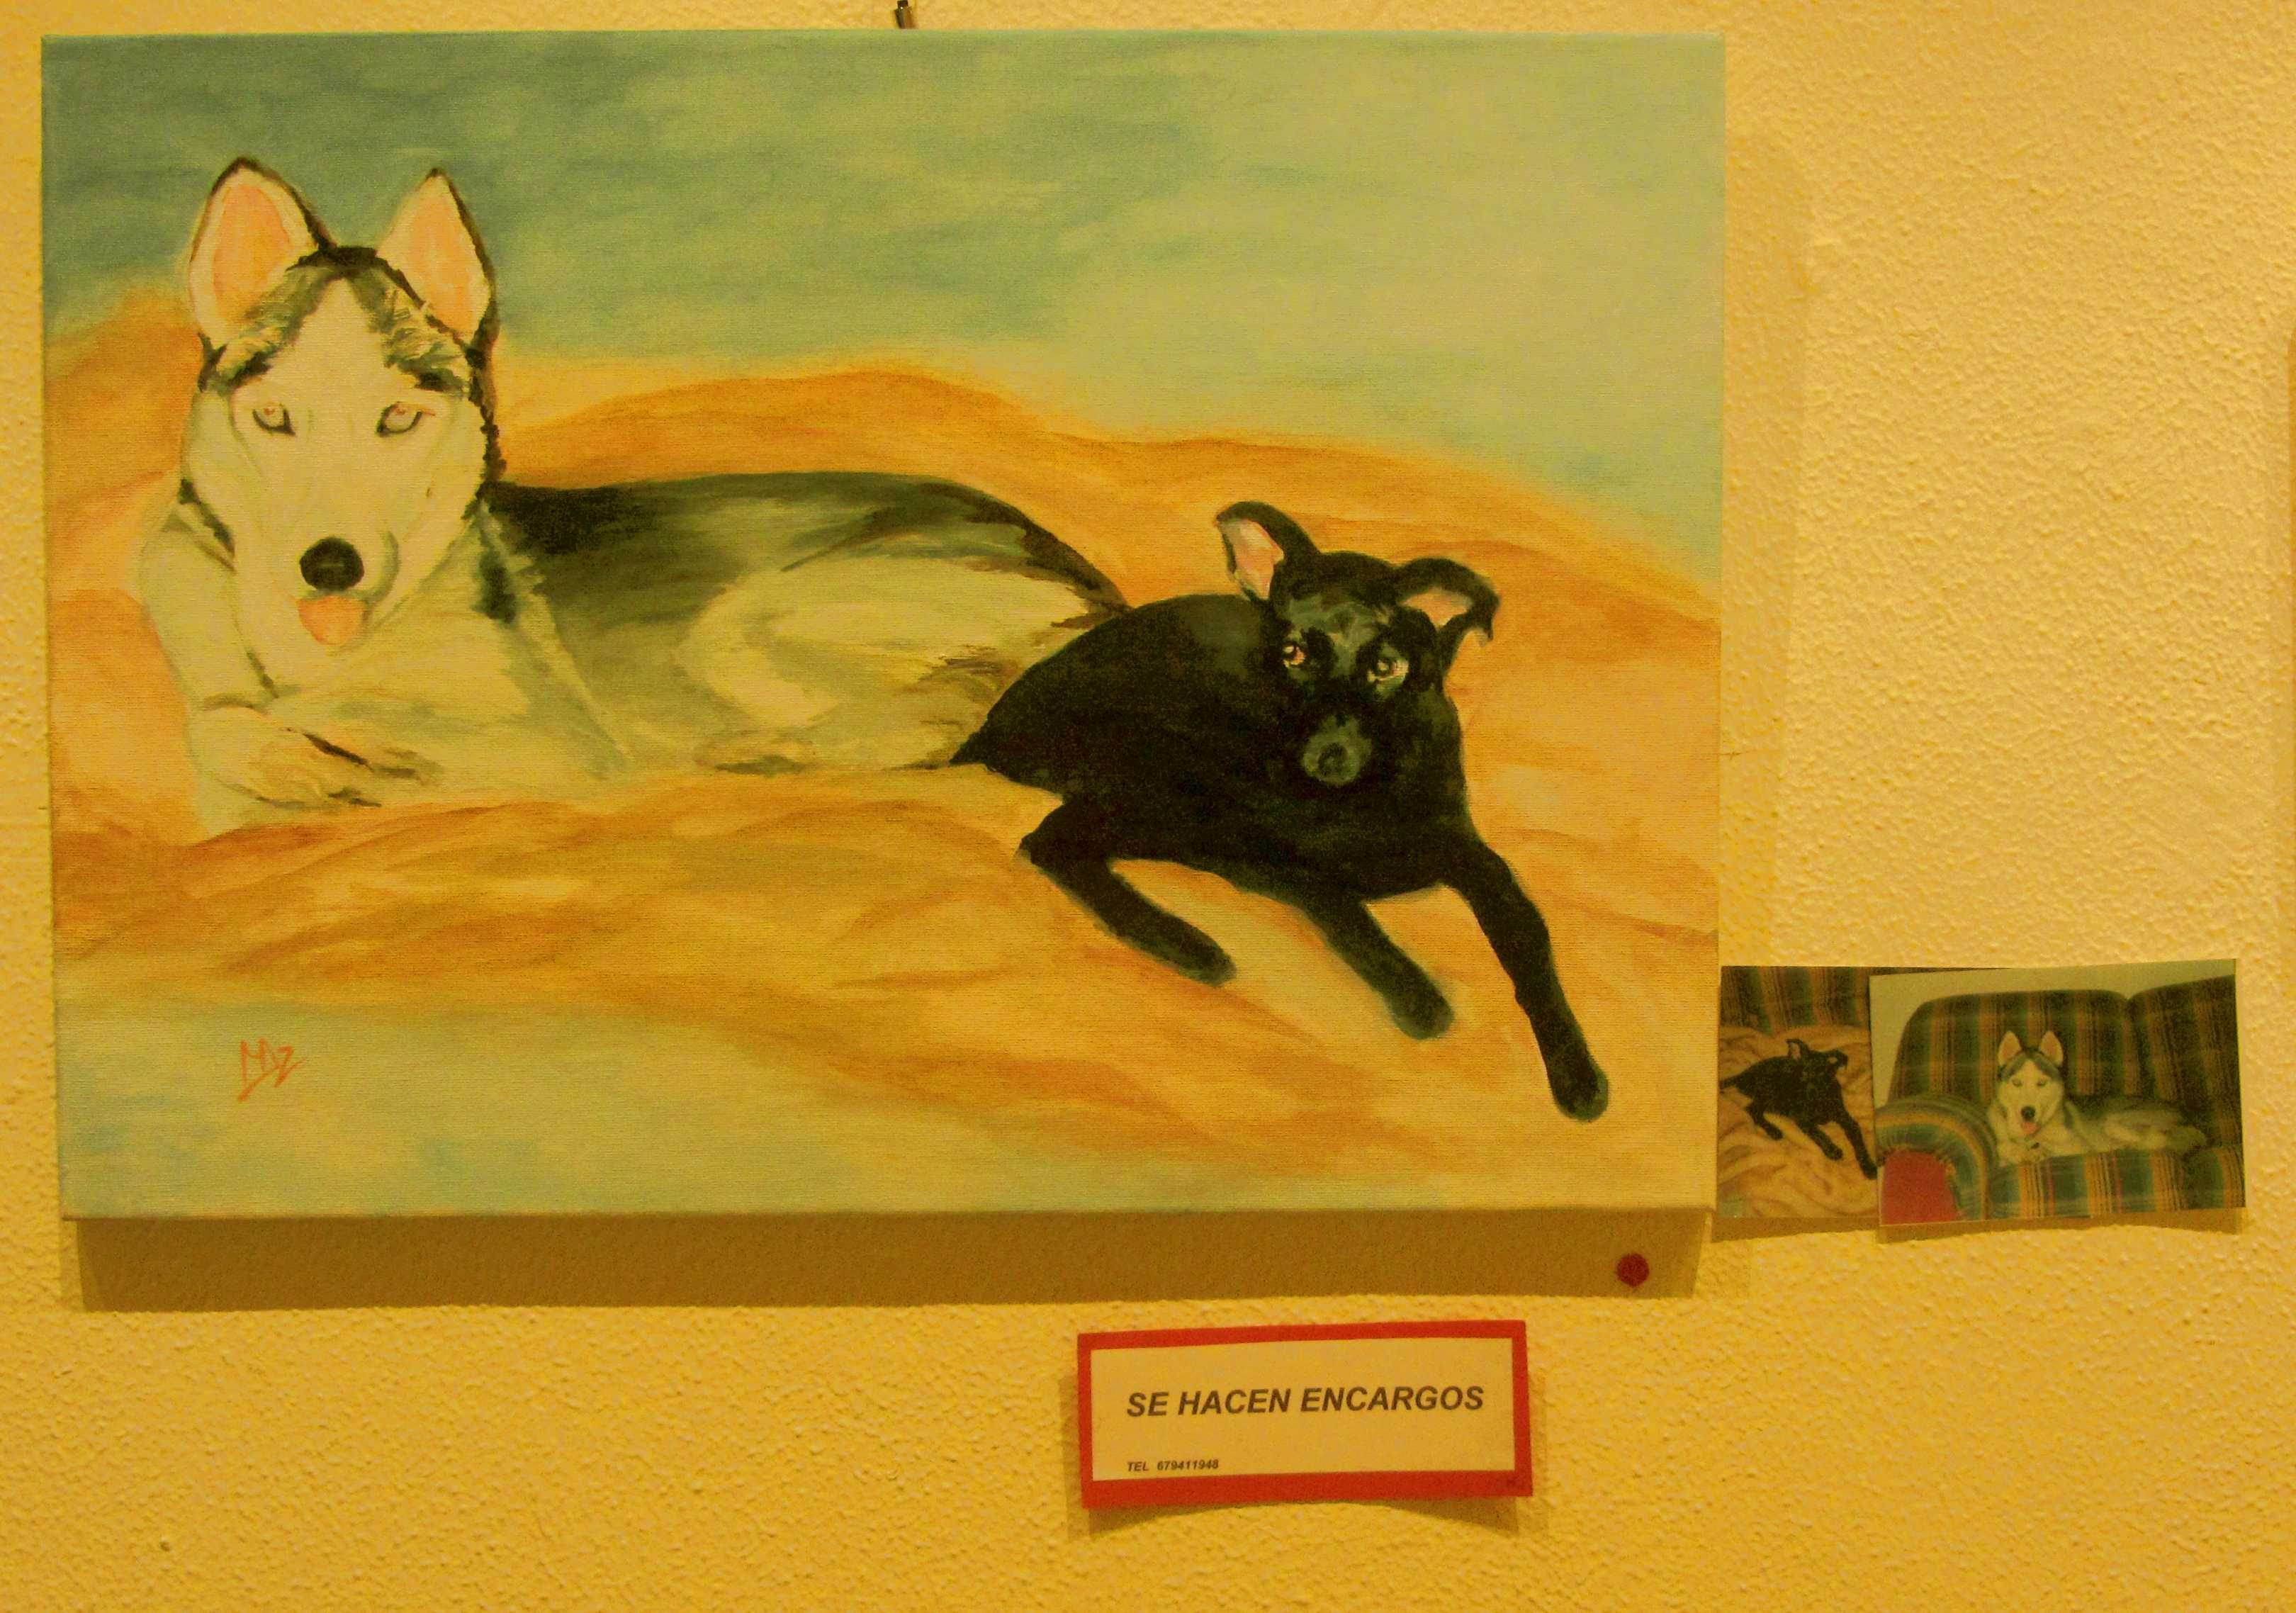 Mariana Arranz's painting of two dogs, painted by request of their owner